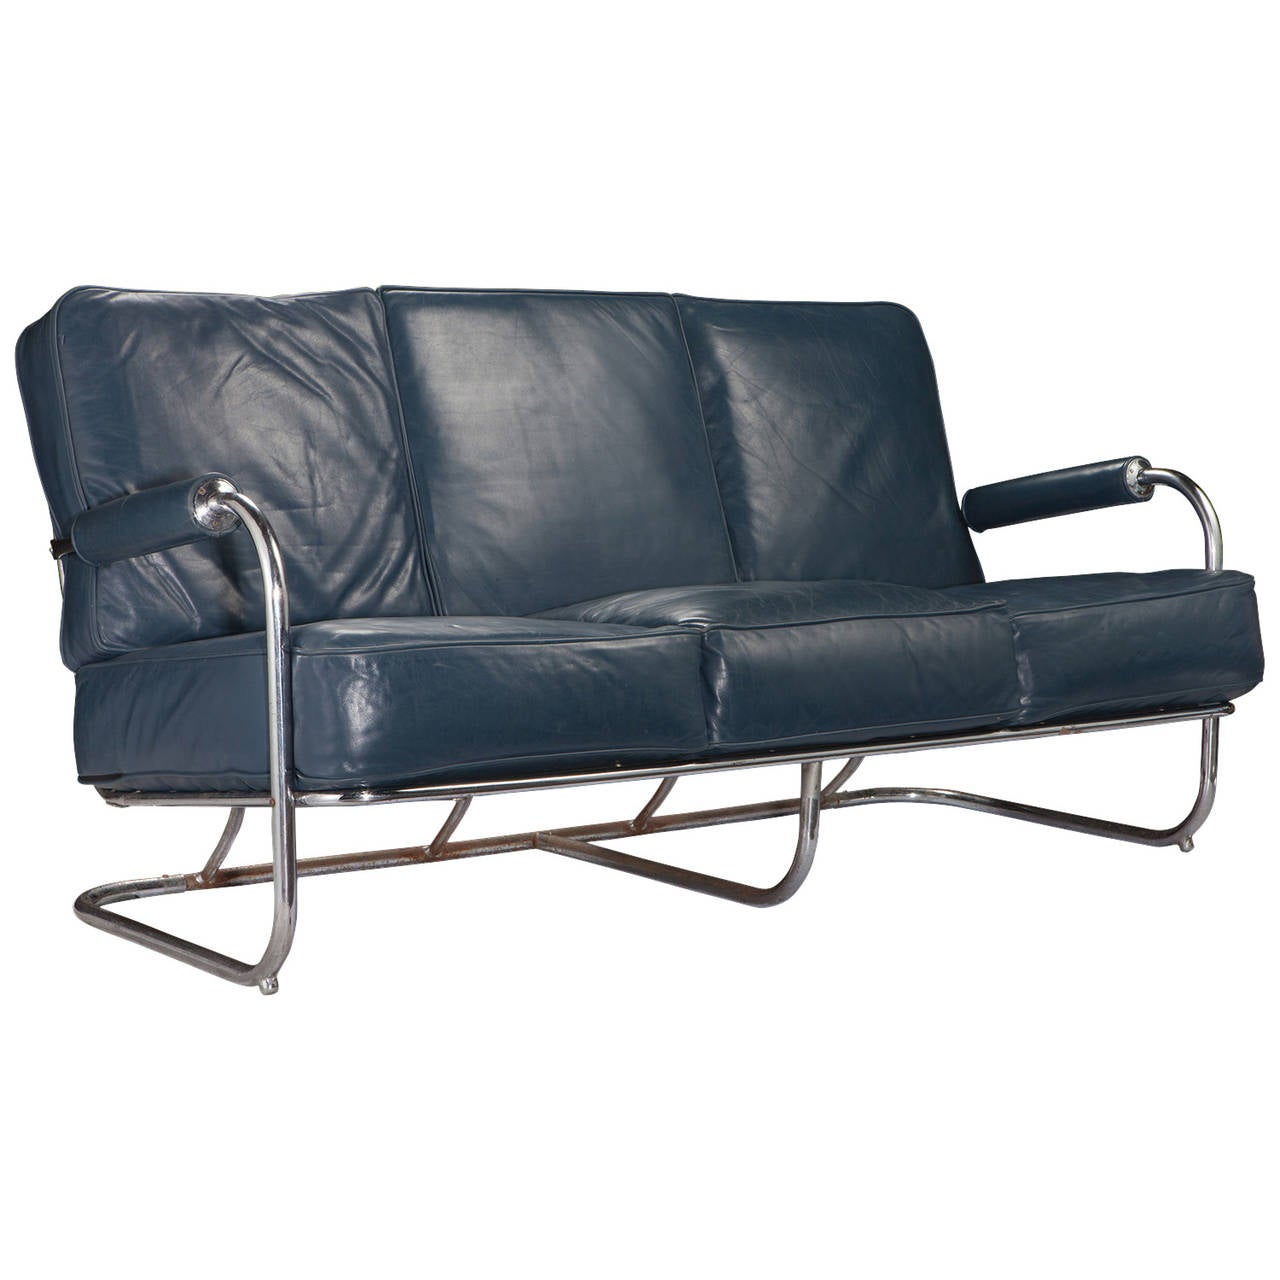 Blue leather chrome sofa at 1stdibs for Blue leather sofa